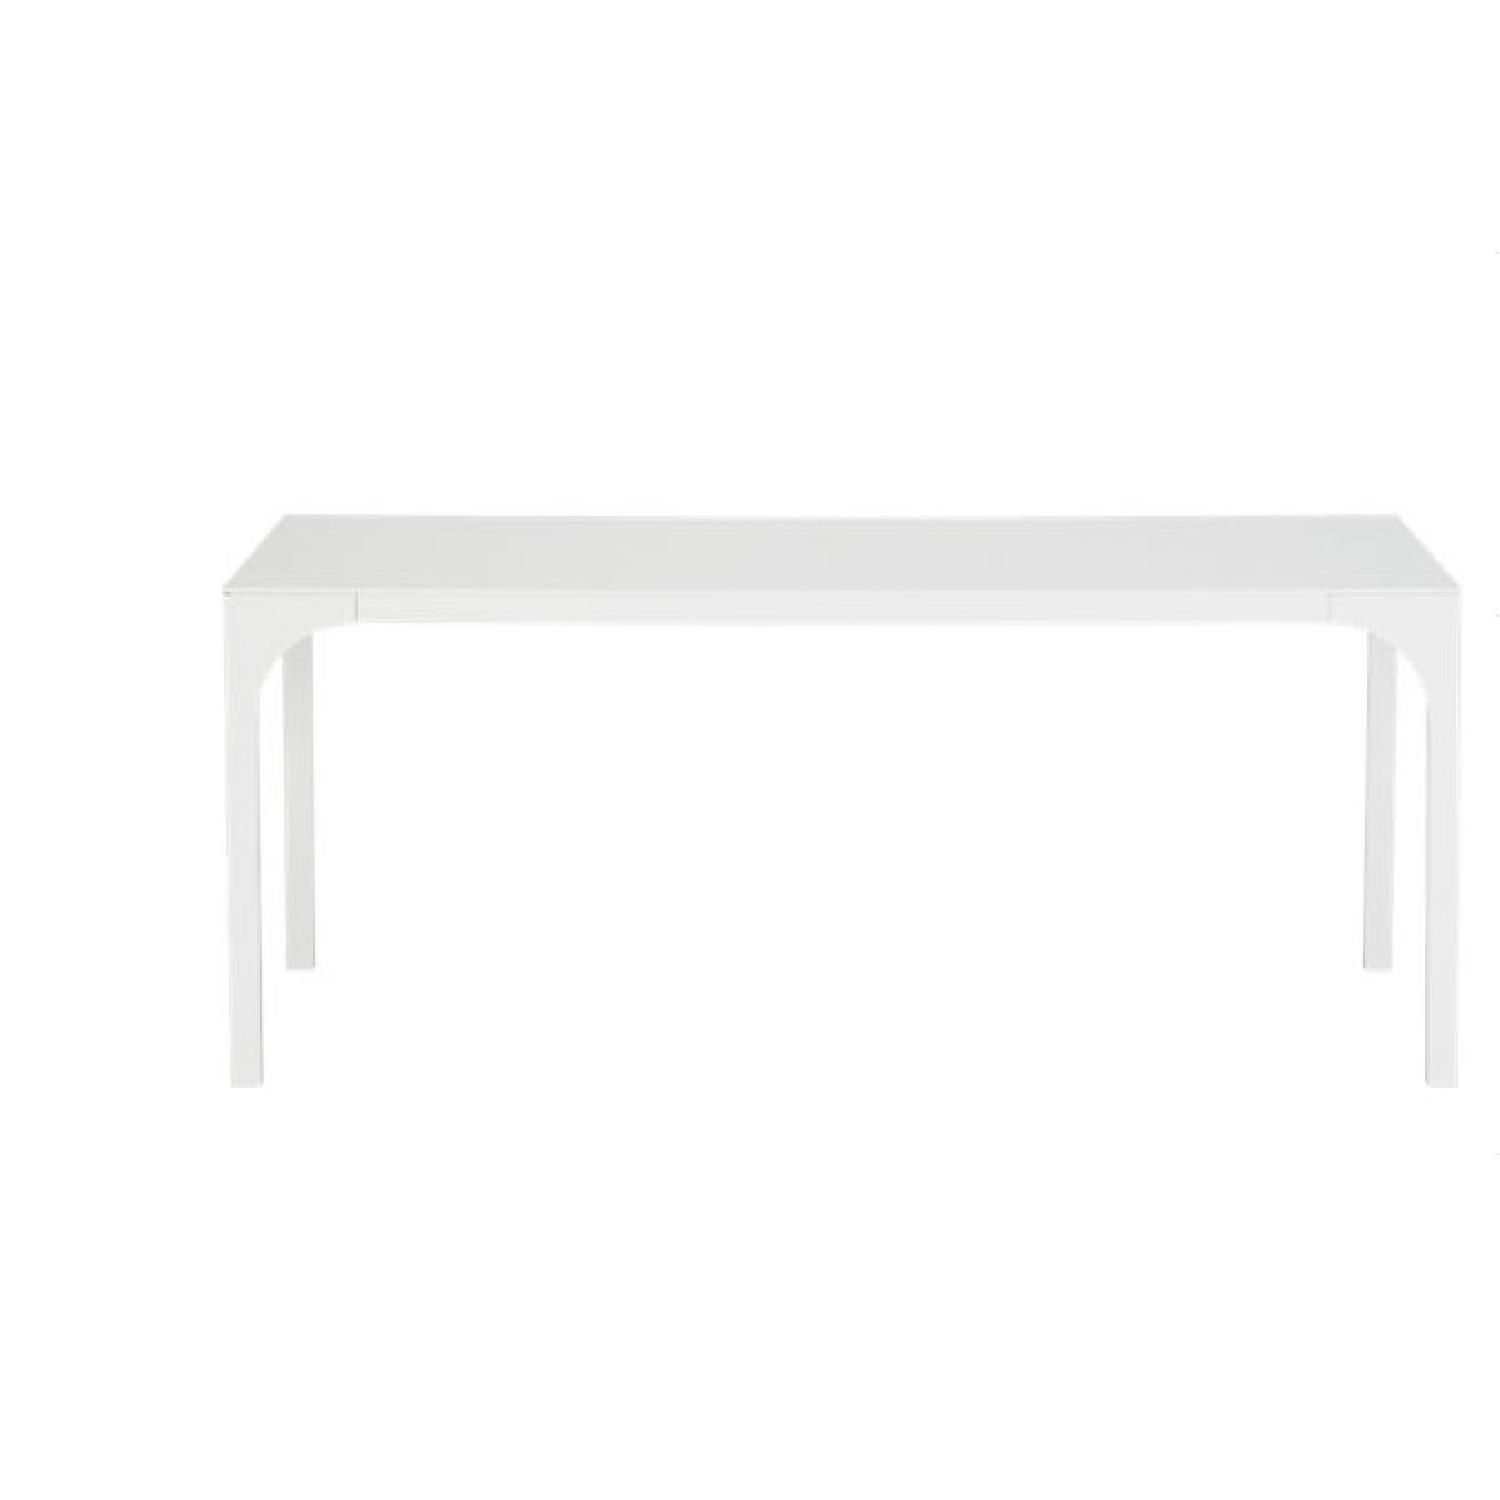 This is a CB2 Aqua Virgo Dining Table for $270 00 aqua virgo